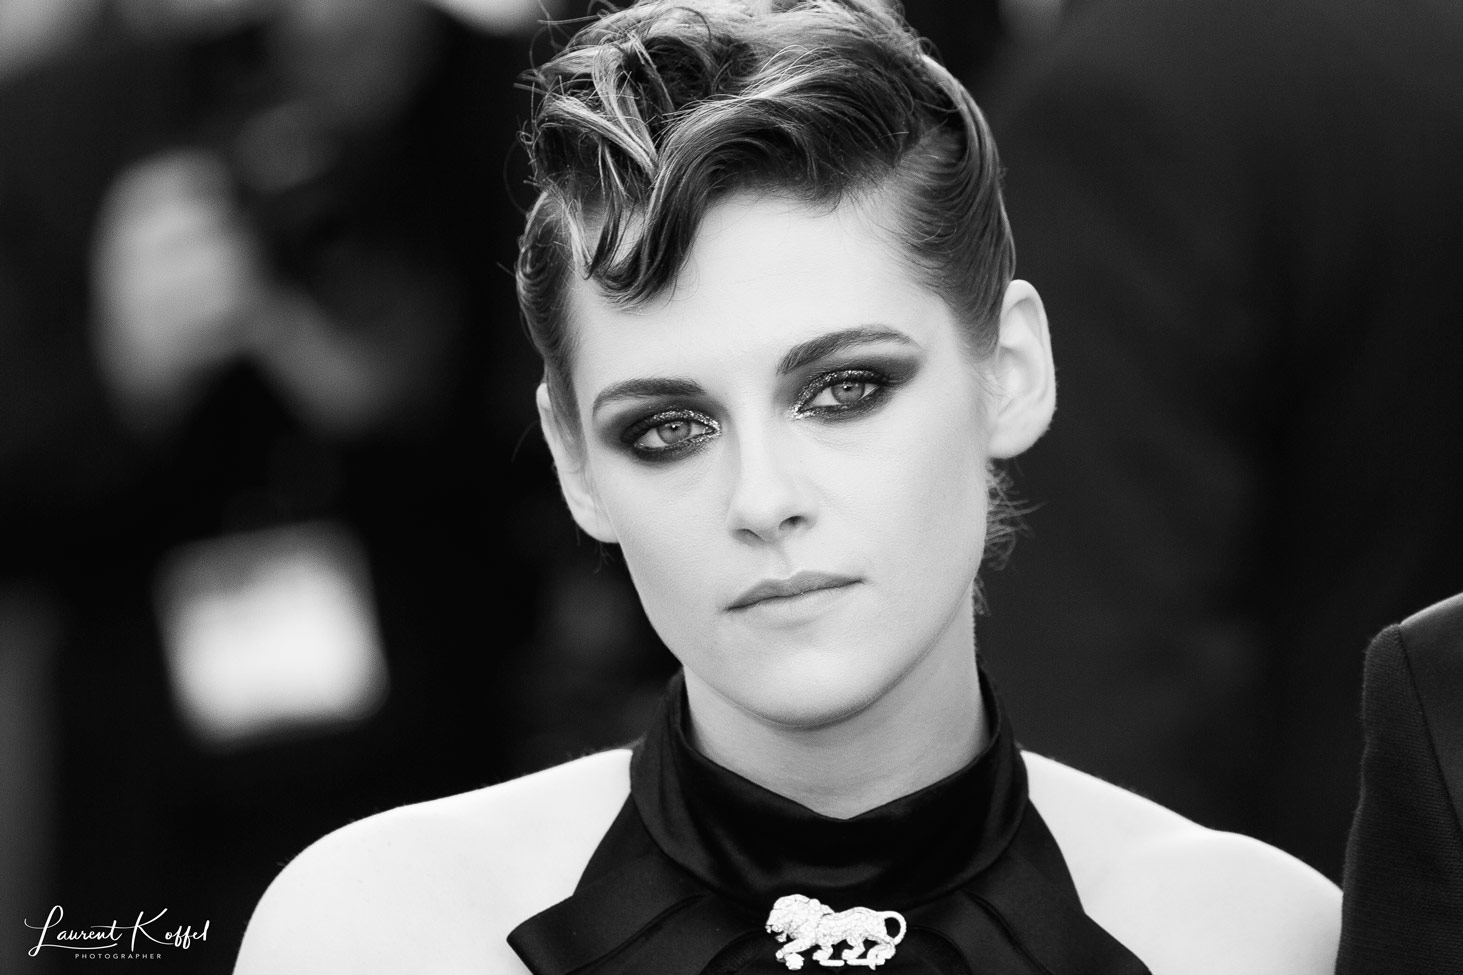 Kristen Stewart by Laurent Koffel